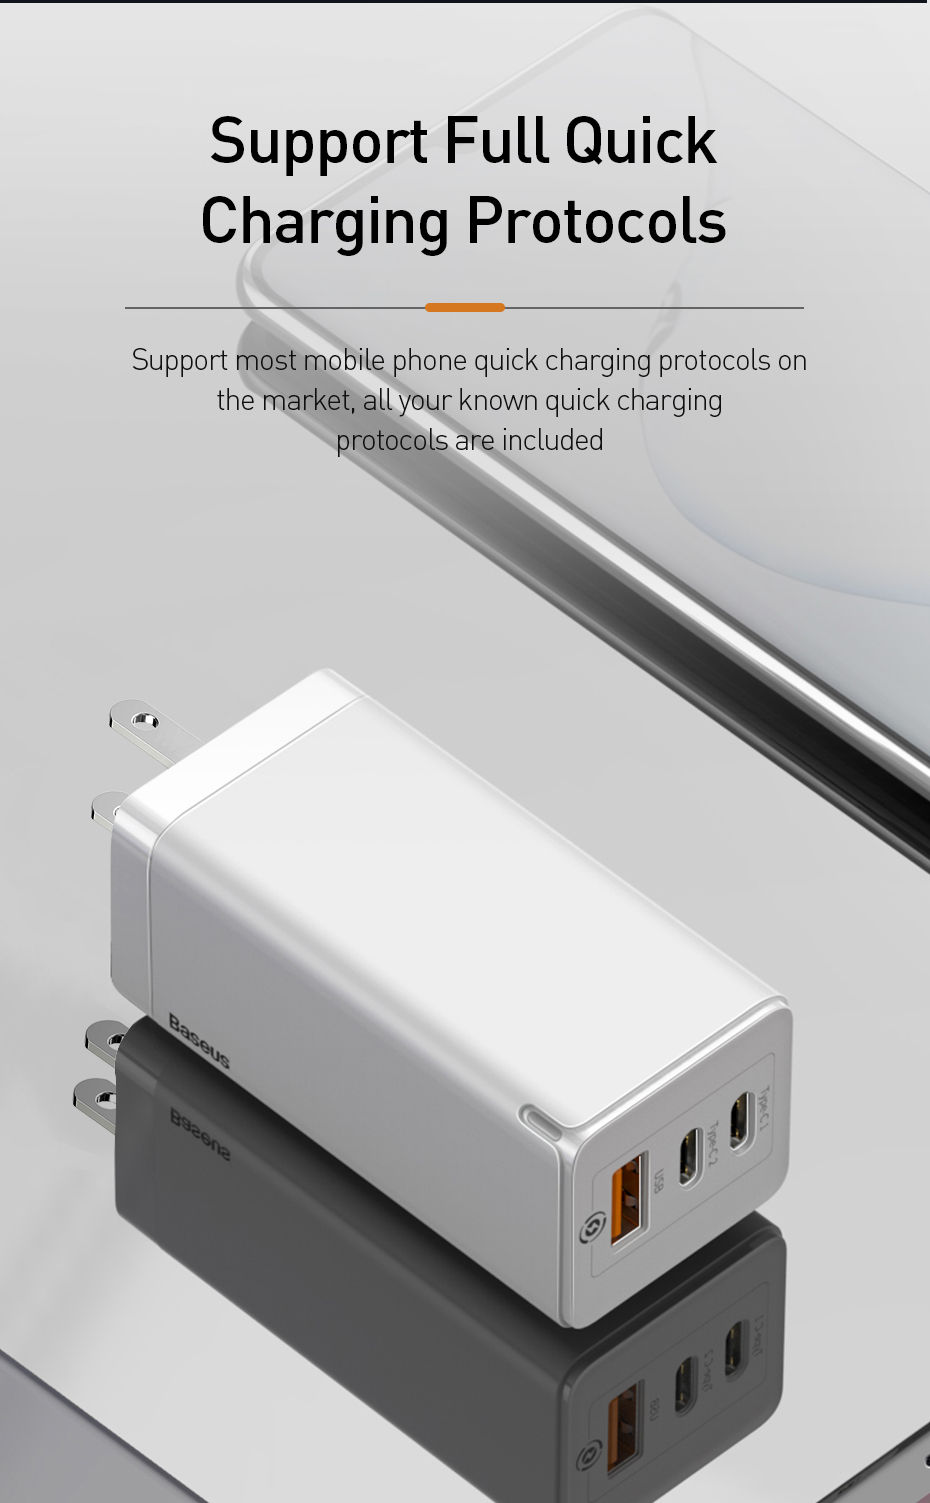 Baseus 65w Fast Gan Charger Us Plug Usb Pd Charger Support Quick Charge 4 0 Scp Supercharge For Iphone 11 Pro Xr Xiaomi Huawei On Phone Cables Usb Usb Chargers